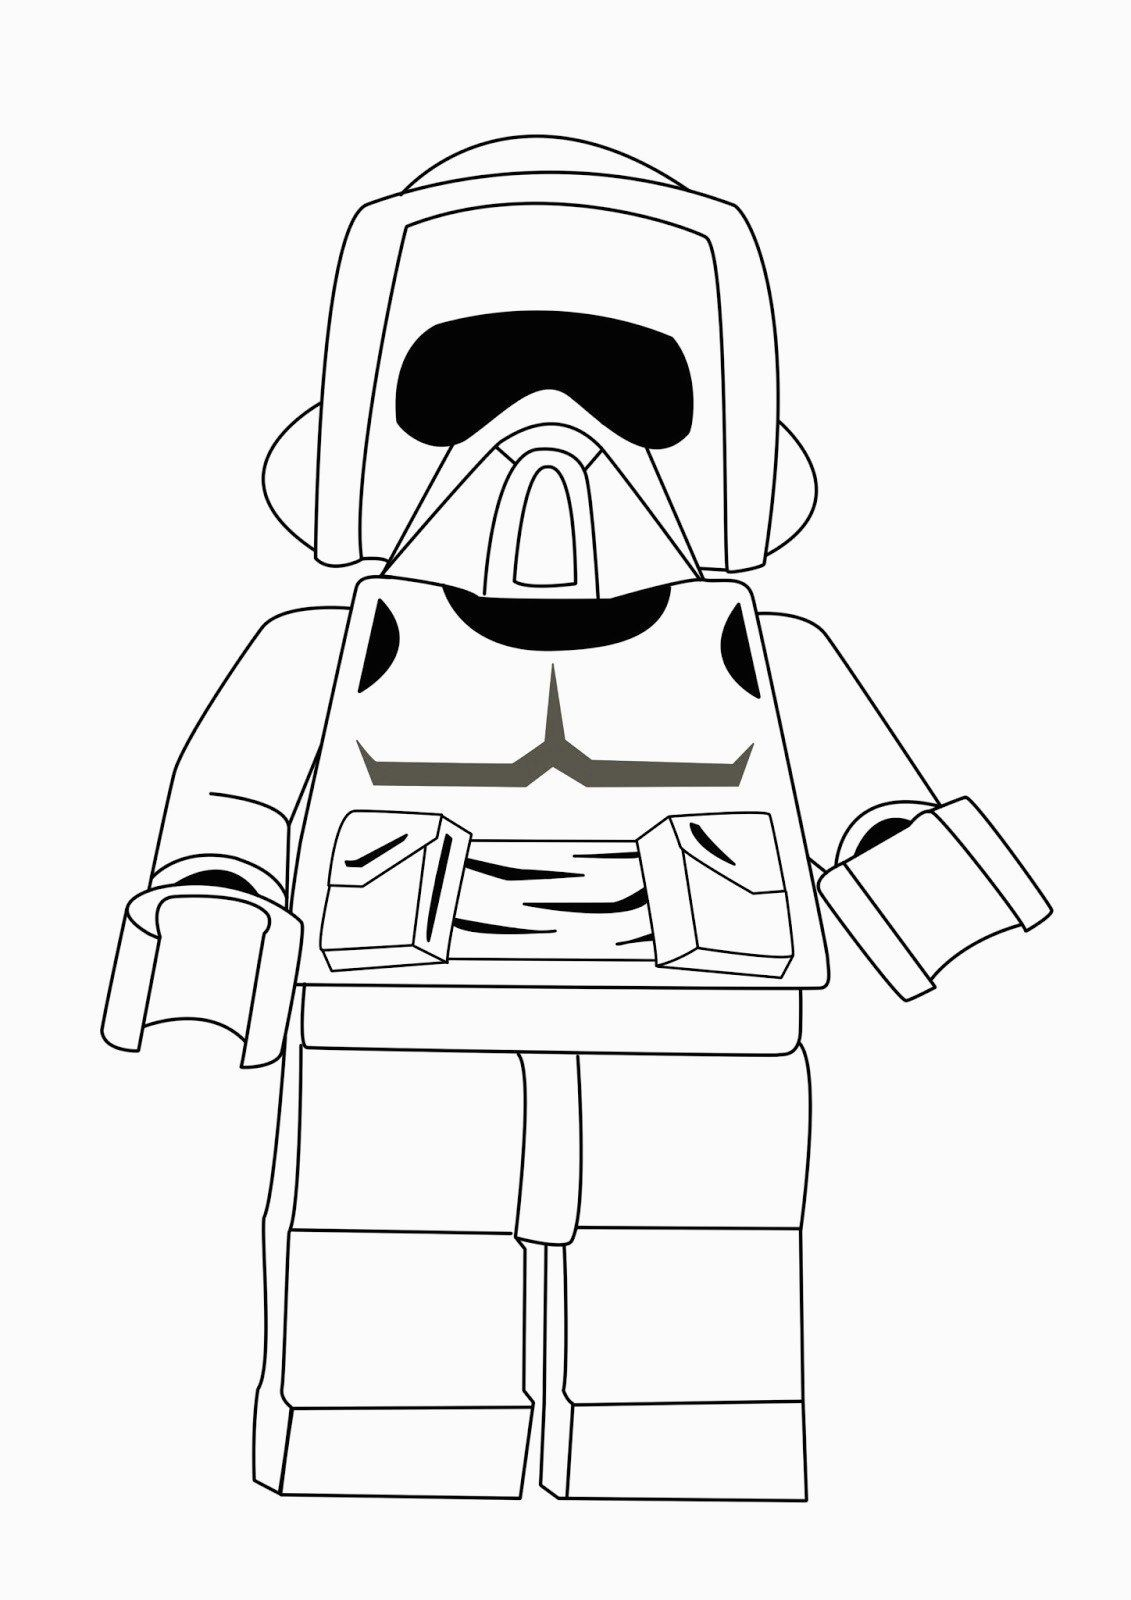 27 Brilliant Image Of Free Star Wars Coloring Pages Entitlementtrap Com Lego Coloring Pages Star Wars Colors Star Wars Coloring Book